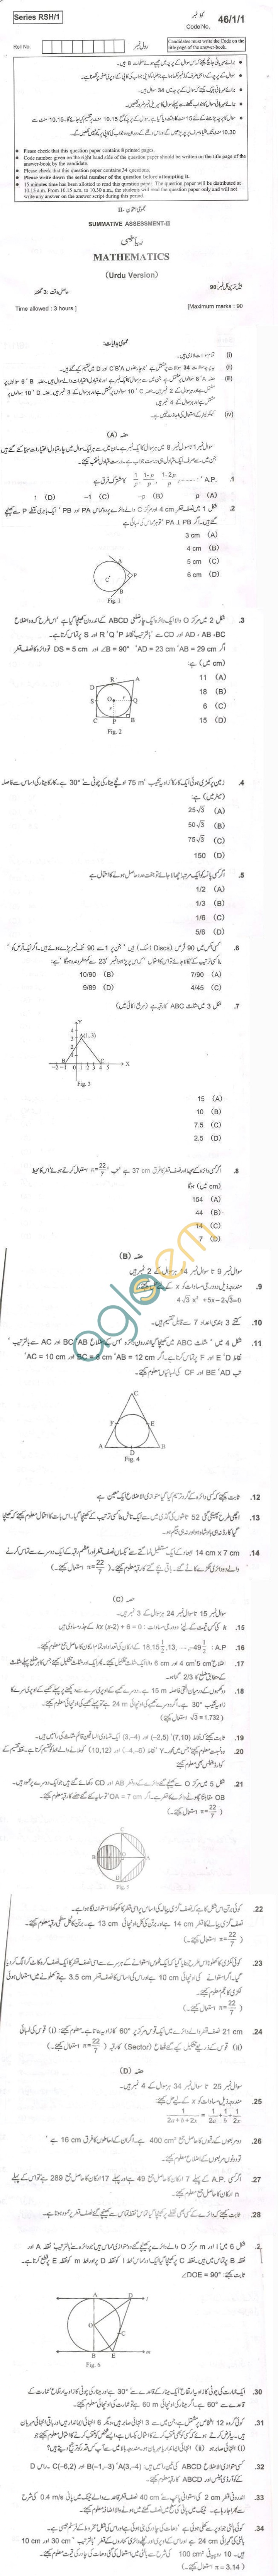 CBSE Board Exam 2013 Class X Question Paper - Mathematics(Urdu Version)